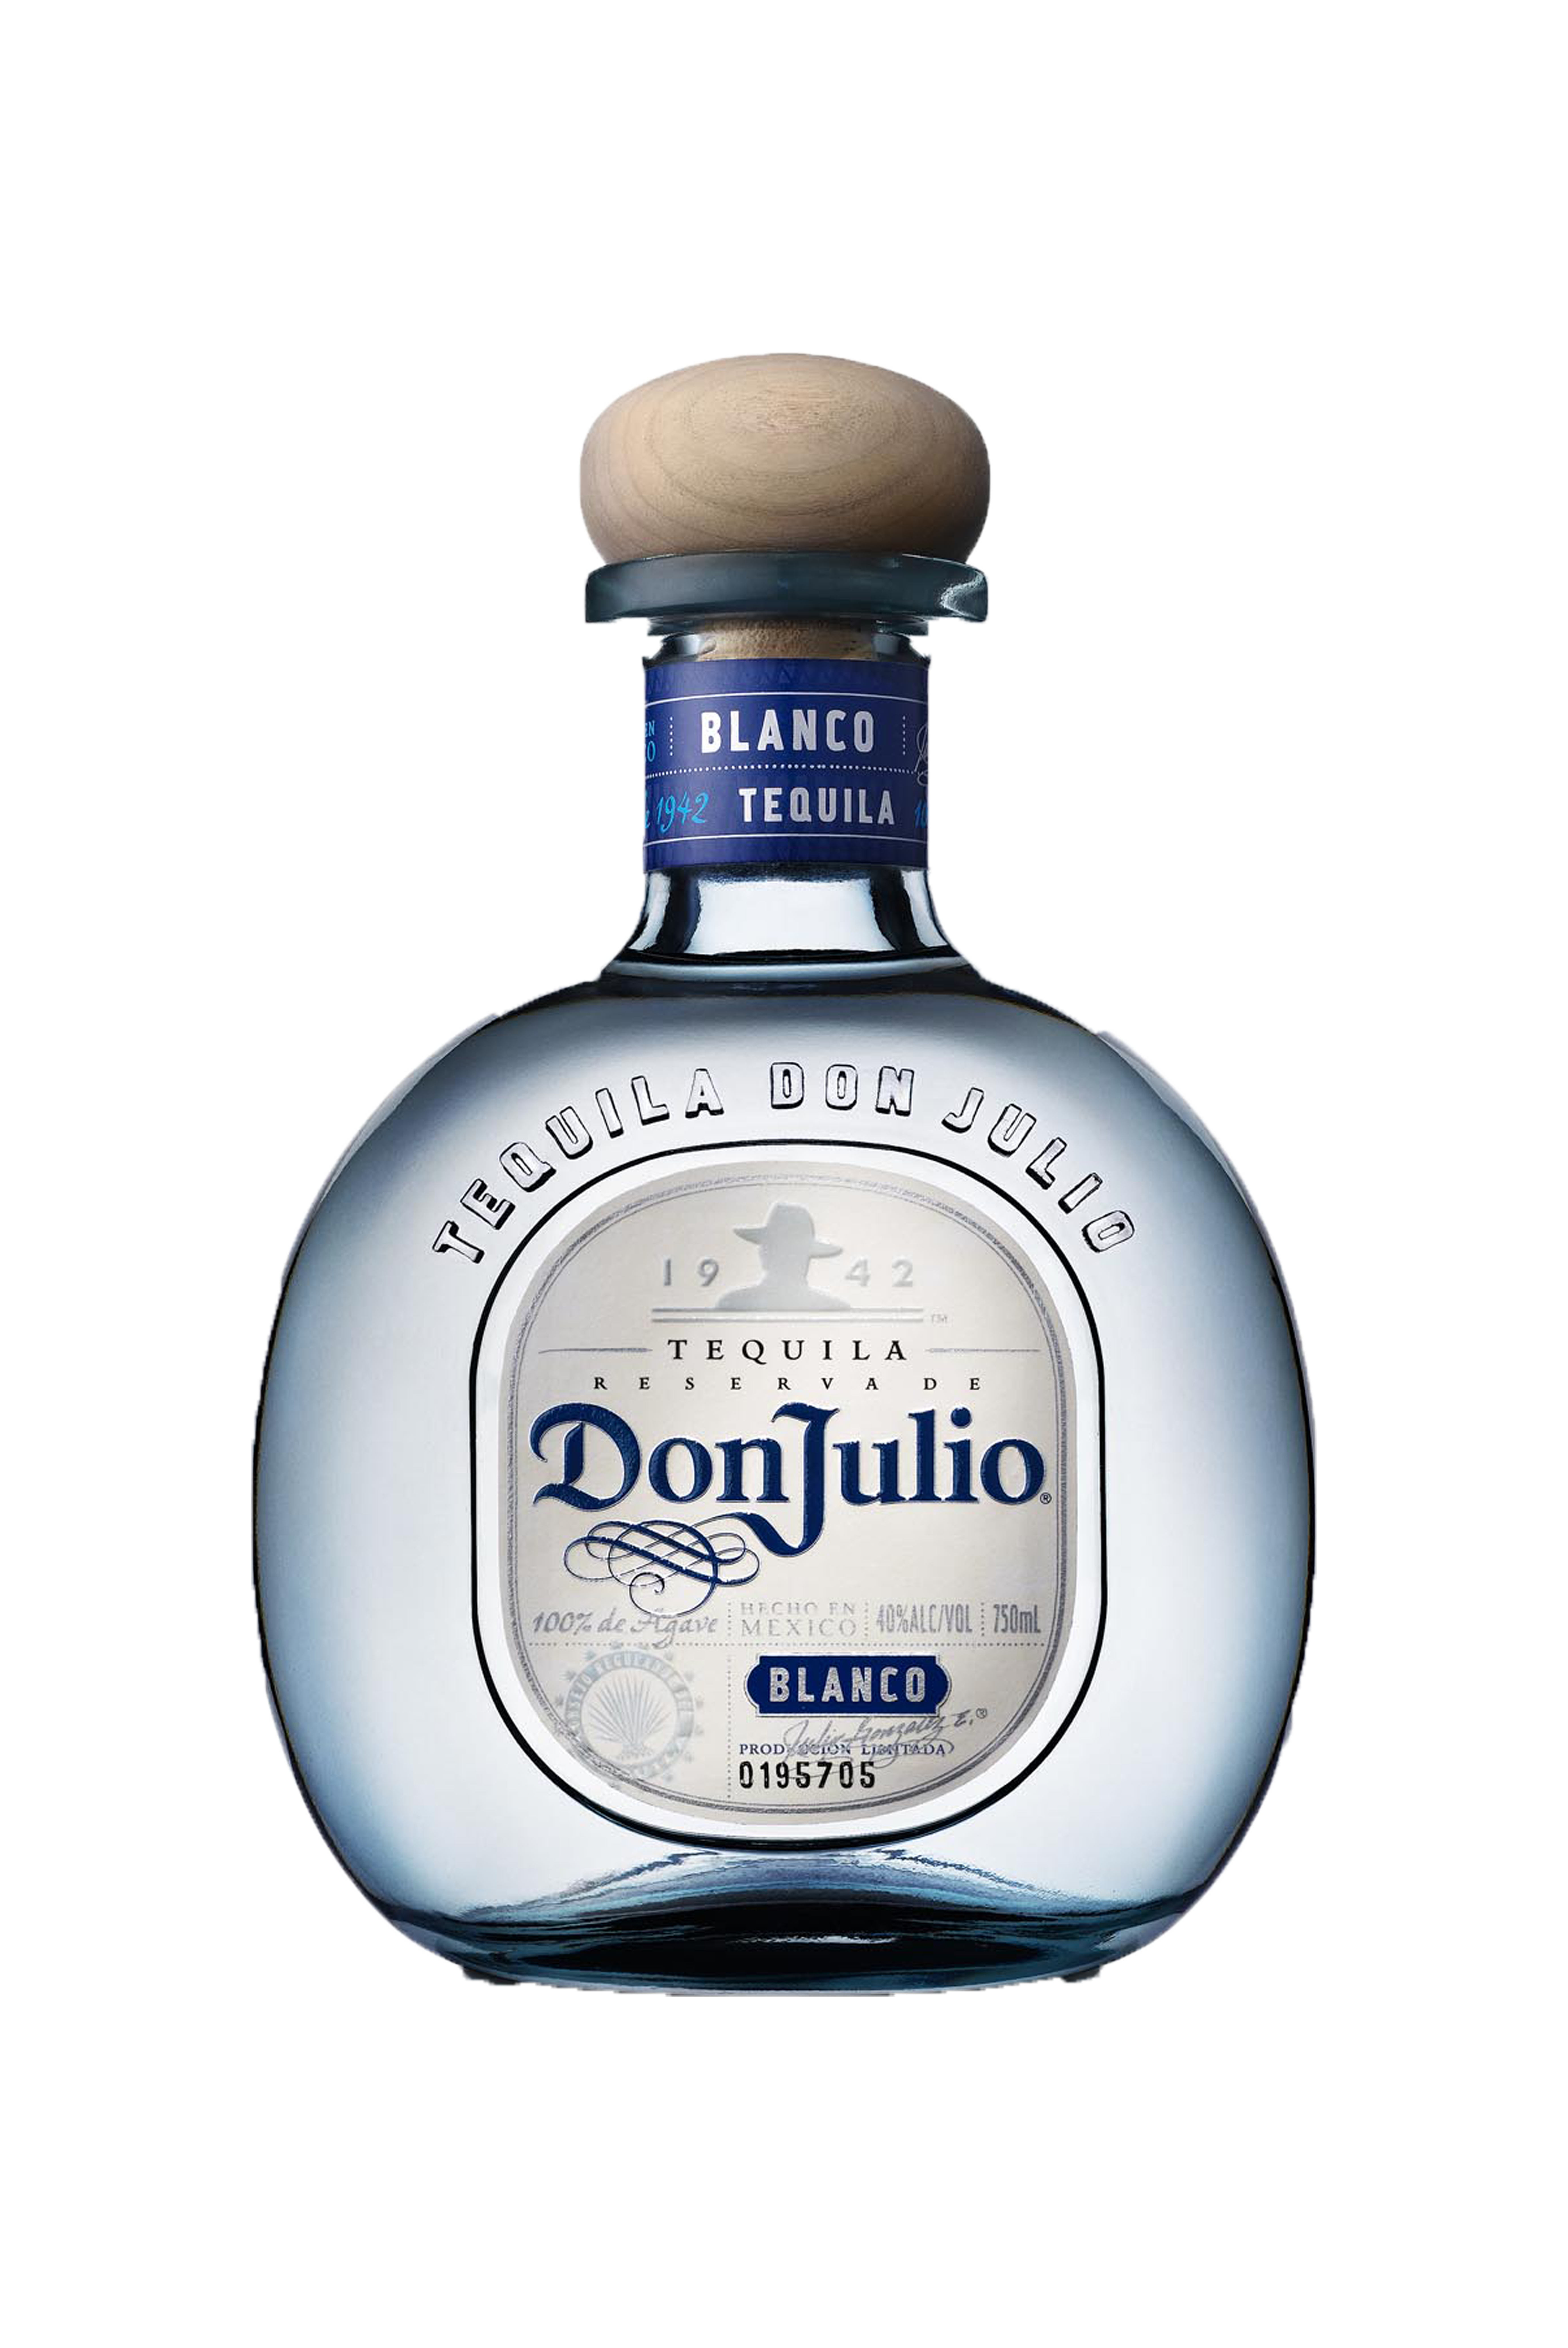 Bouteille Don Julio Blanco